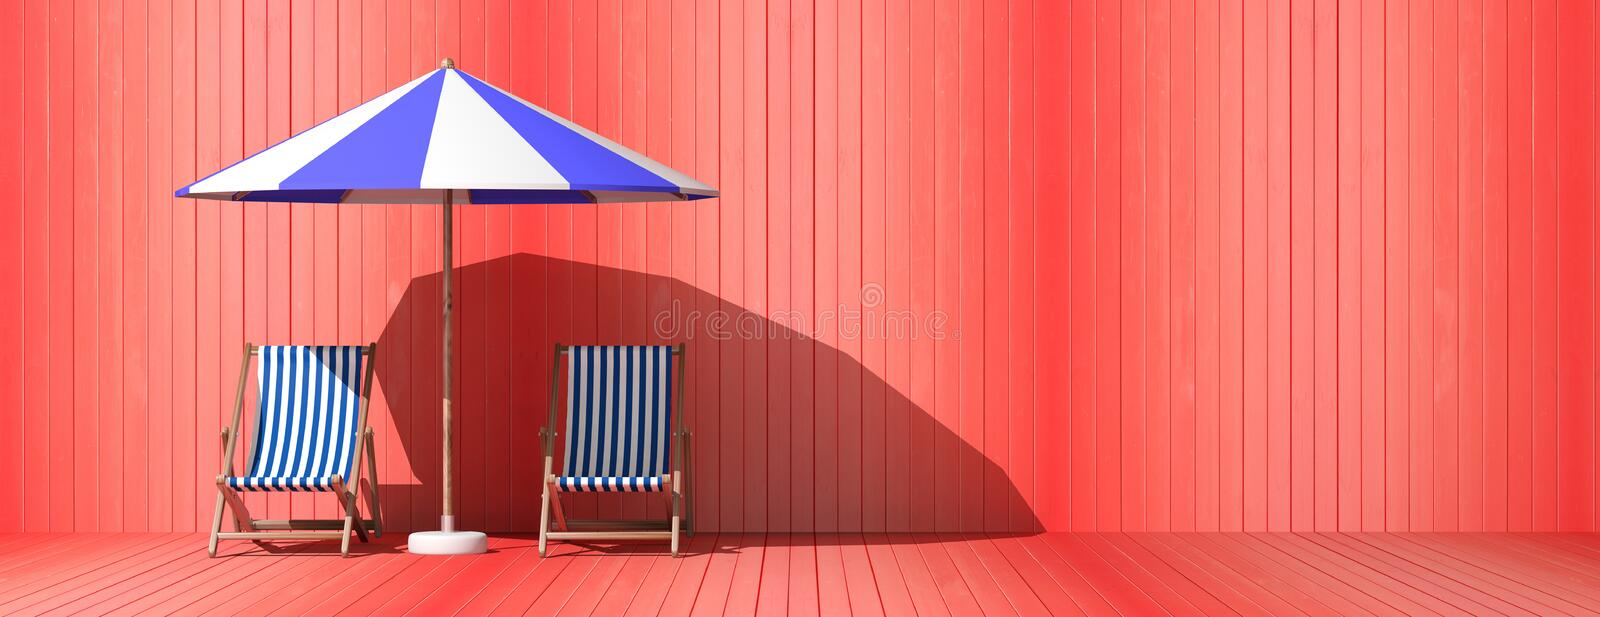 Summer vacation. Beach chairs and umbrella on wooden wall background, banner. 3d illustration. Summer vacation. Beach chairs and umbrella on red wooden wall royalty free illustration